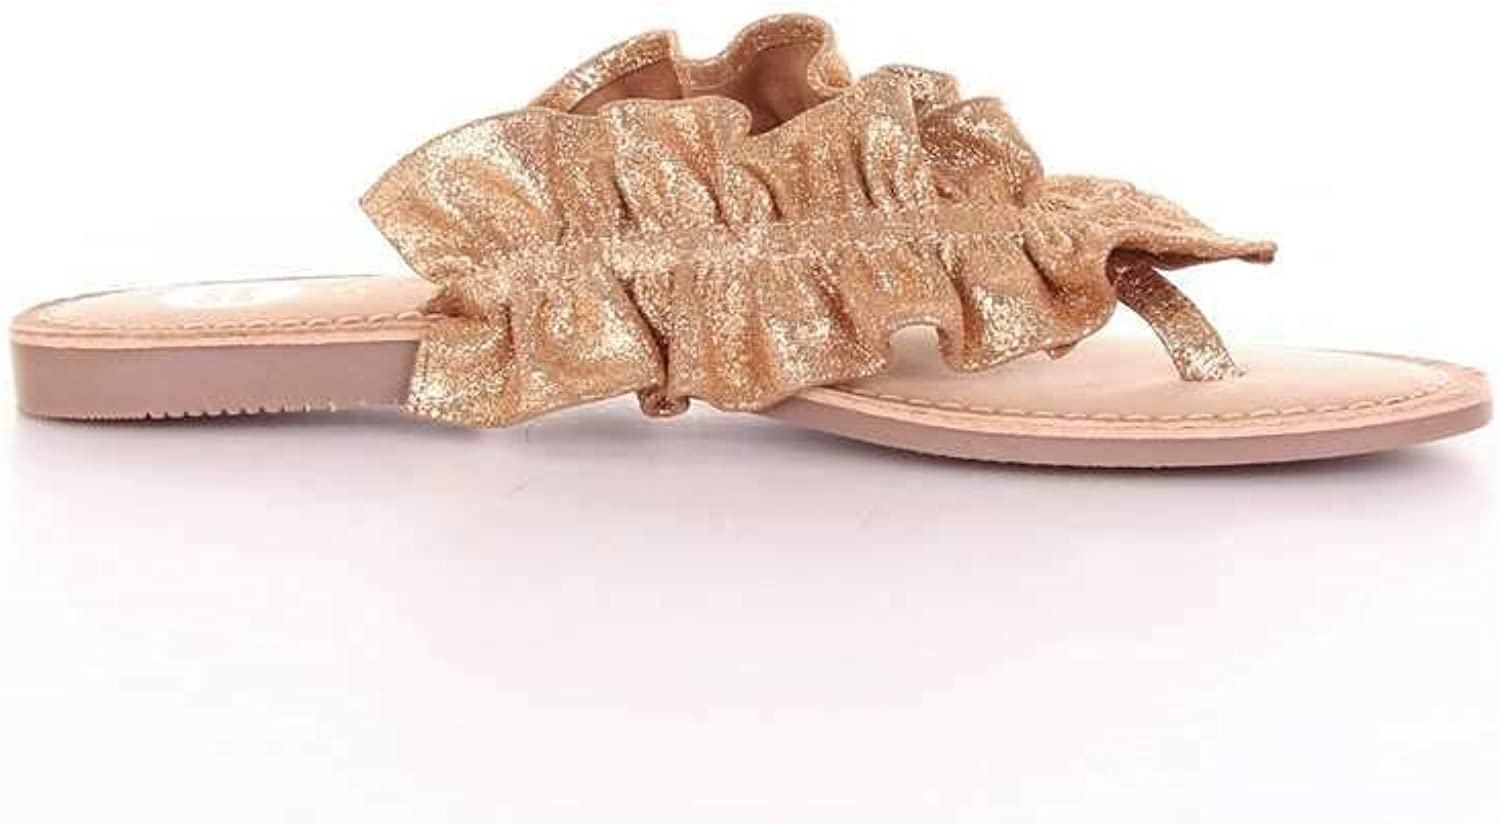 GIOSEPPO Women's 44764gold gold Leather Sandals